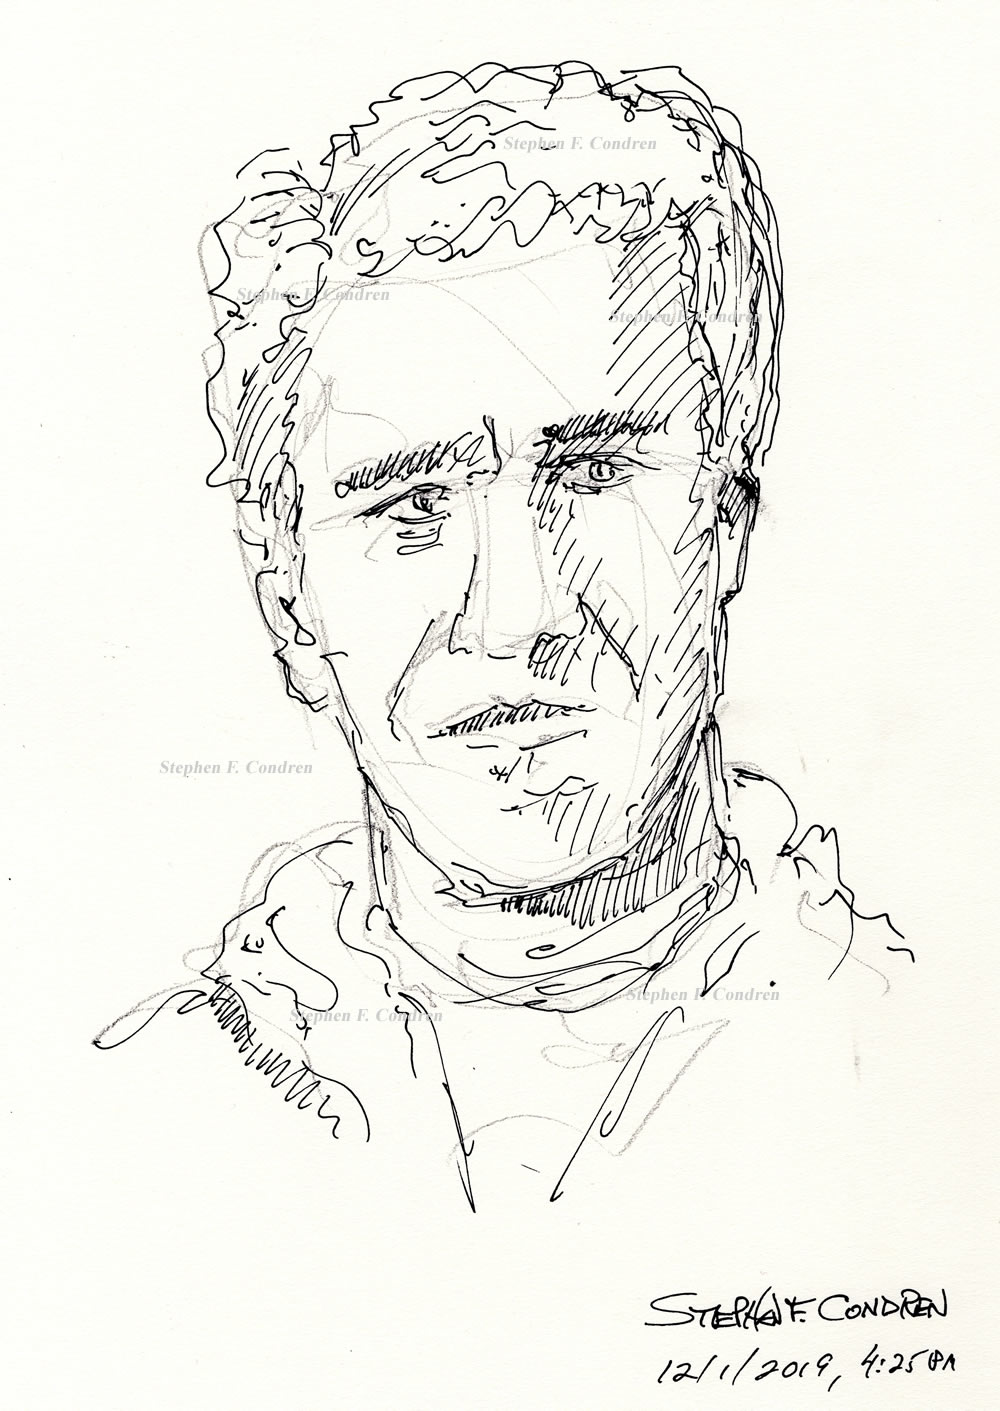 Jeffrey Epstein #612Z, a pedophile sex offender, pen & ink drawing by artist Stephen F. Condren.